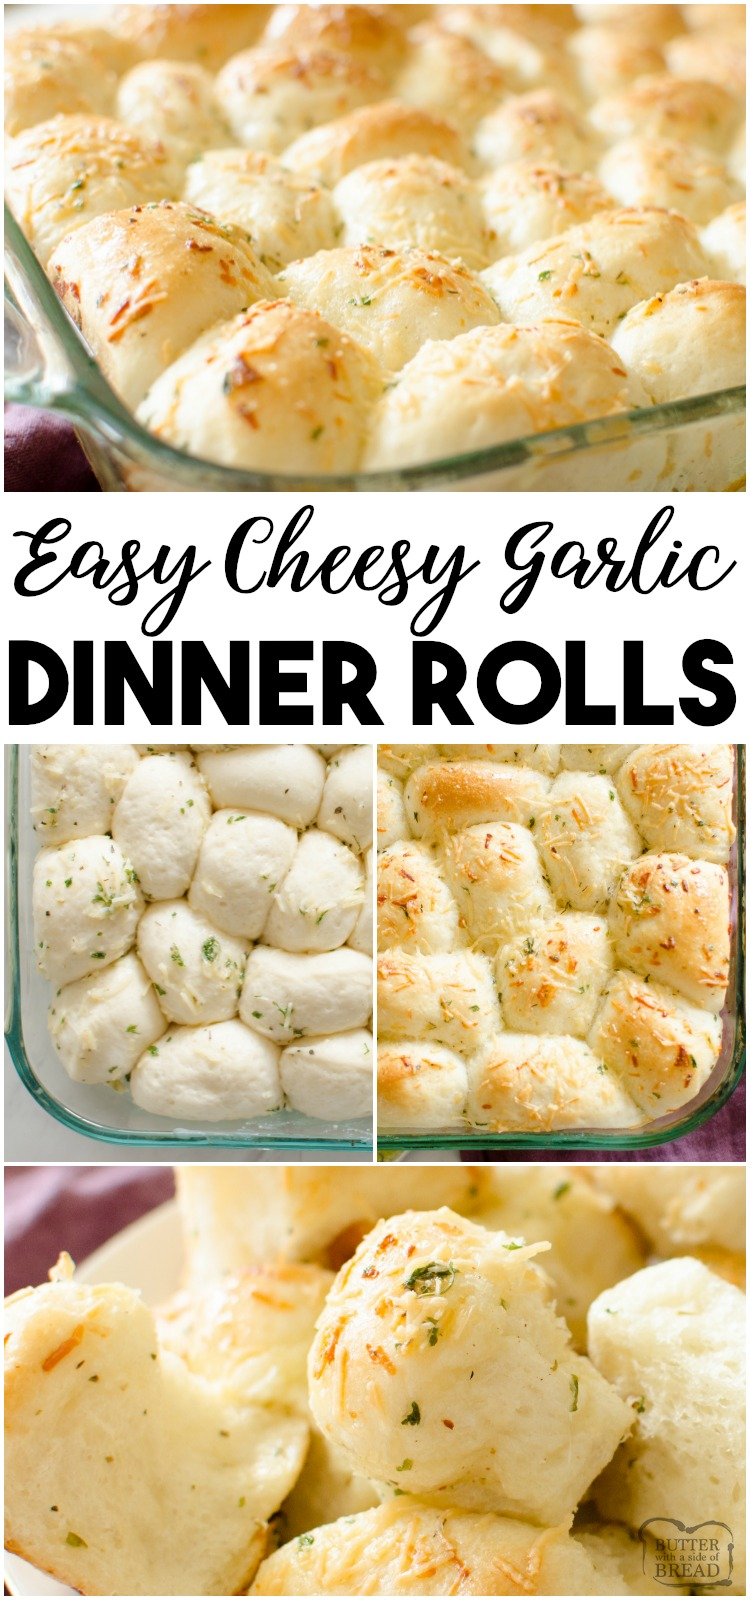 Easy Parmesan Garlic Dinner Rolls made from frozen rolls and tossed with butter and seasonings. Bakes in under 30 minutes, everyone loves these soft, buttery dinner rolls! #bread #dinner #rolls #butter #cheese #baking #food #recipe from BUTTER WITH A SIDE OF BREAD